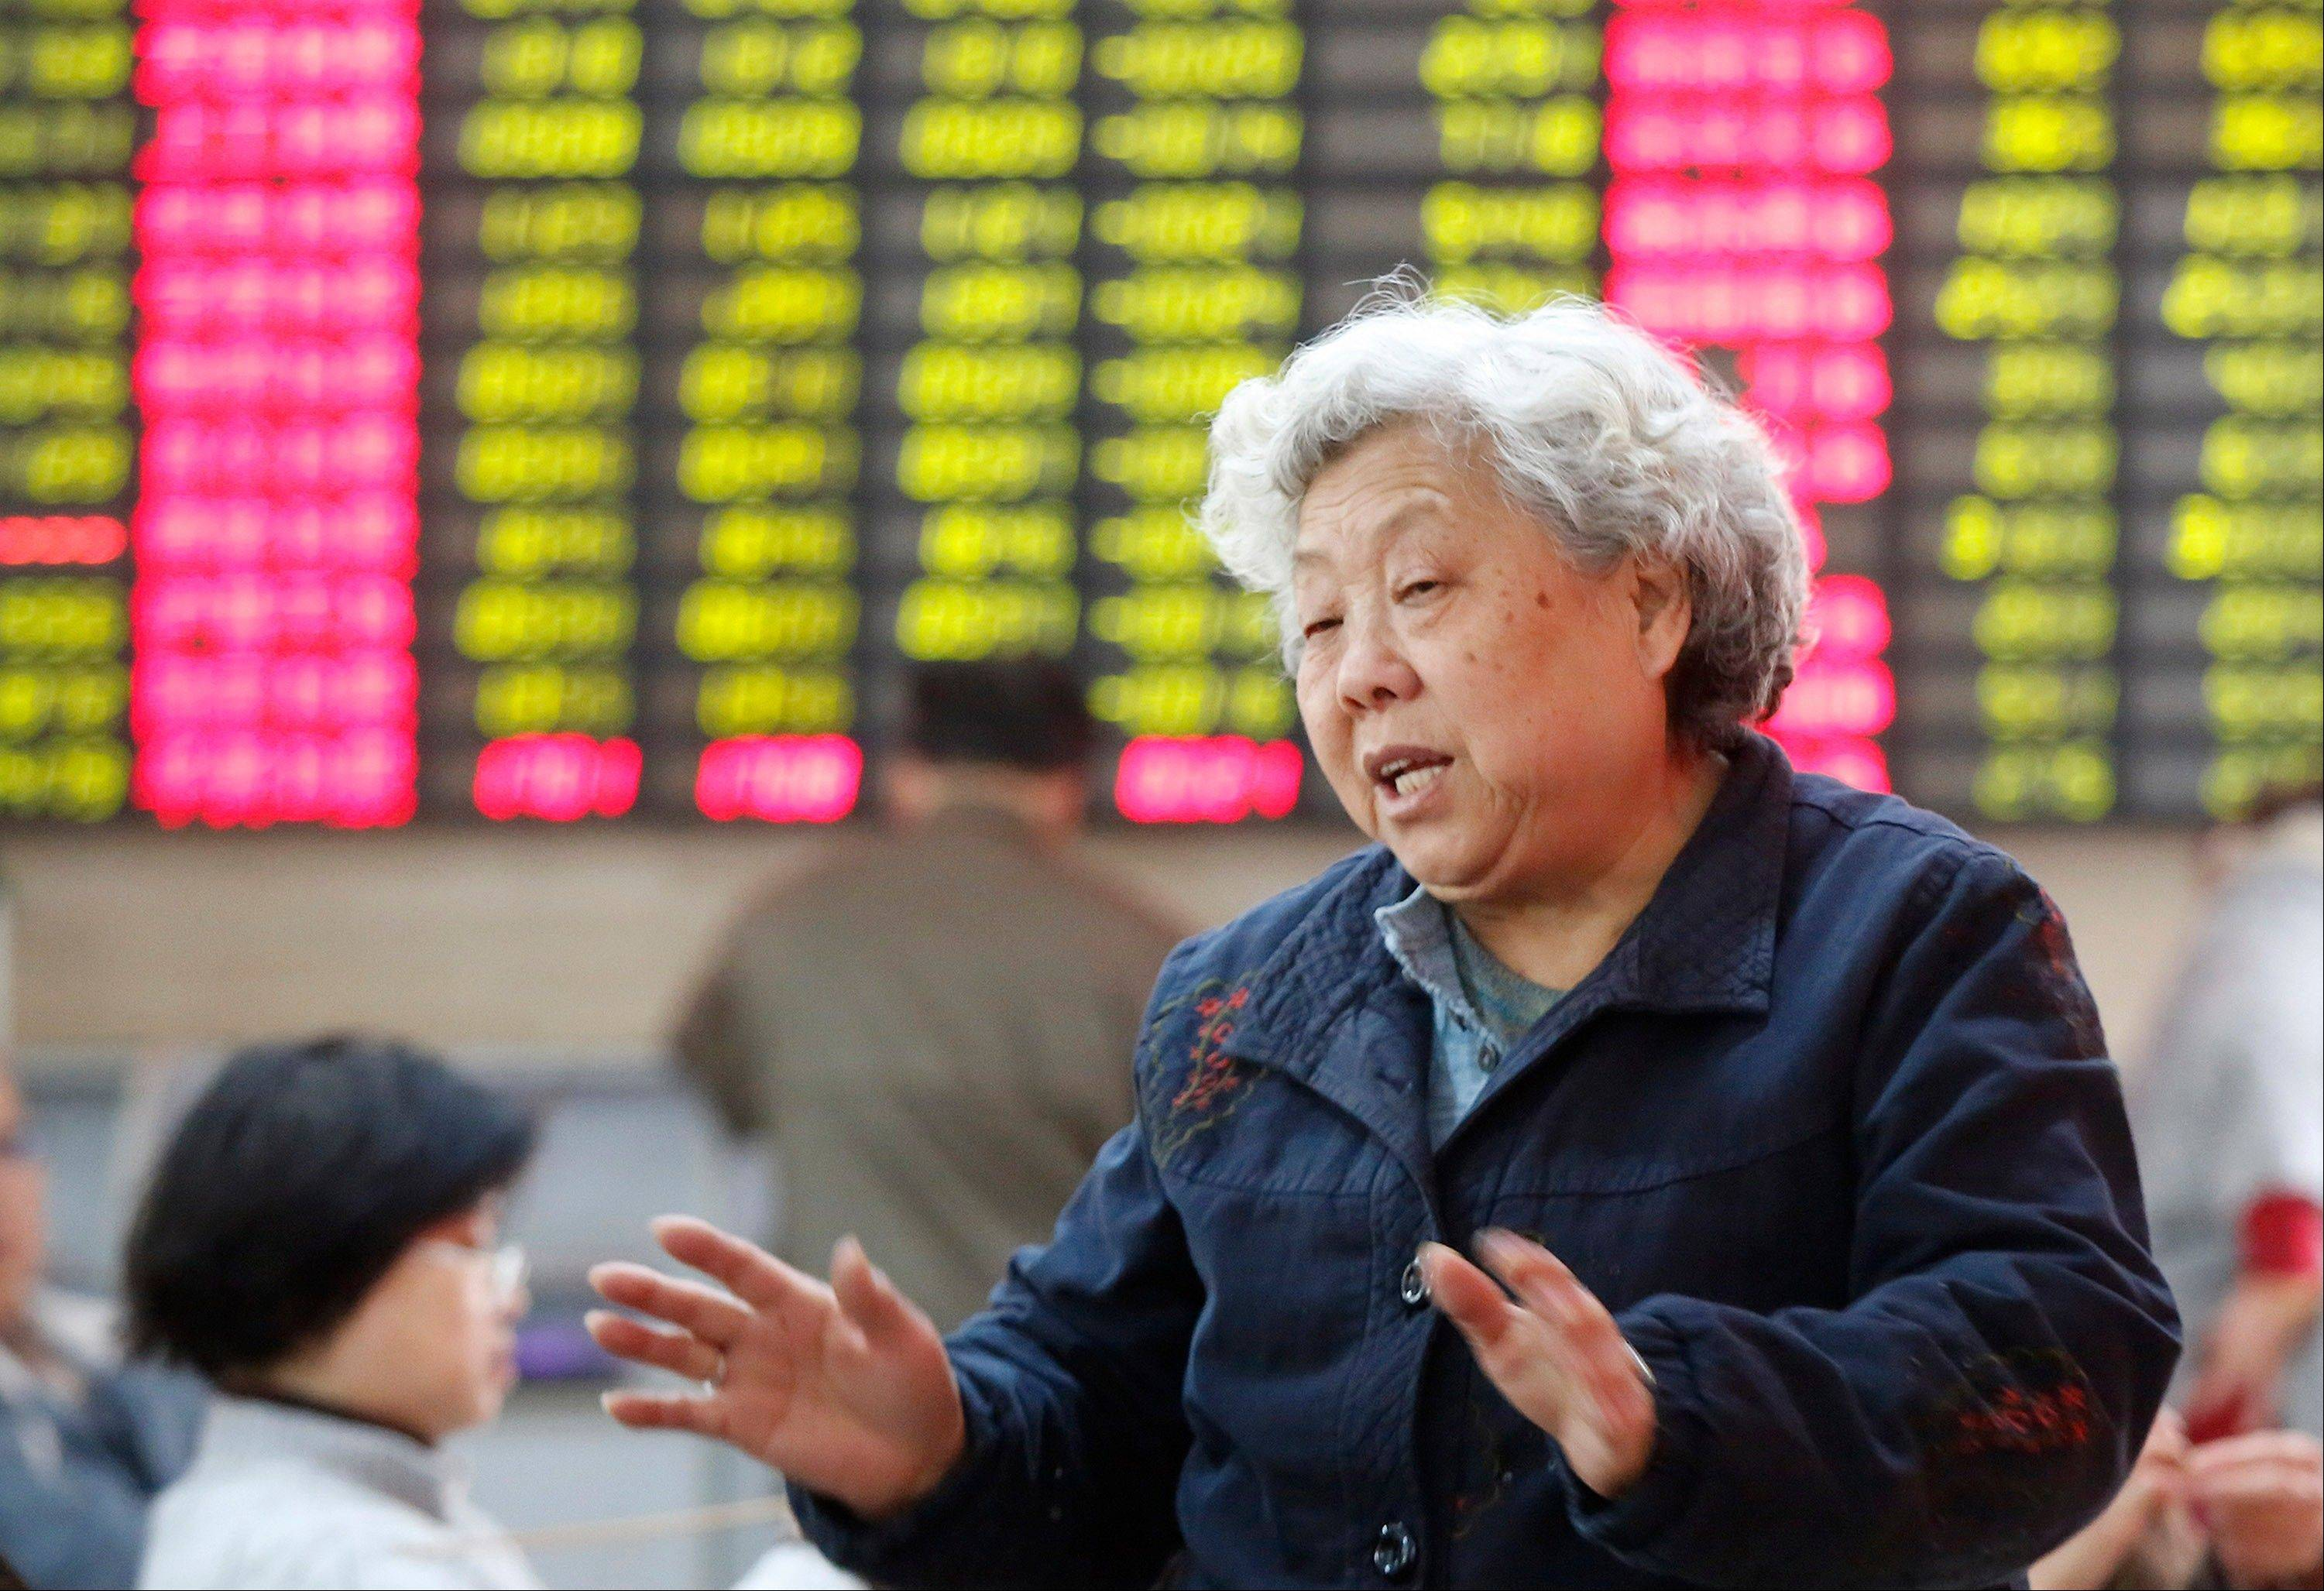 A woman chats with her fellow investor at a private securities company Tuesday in Shanghai, China.